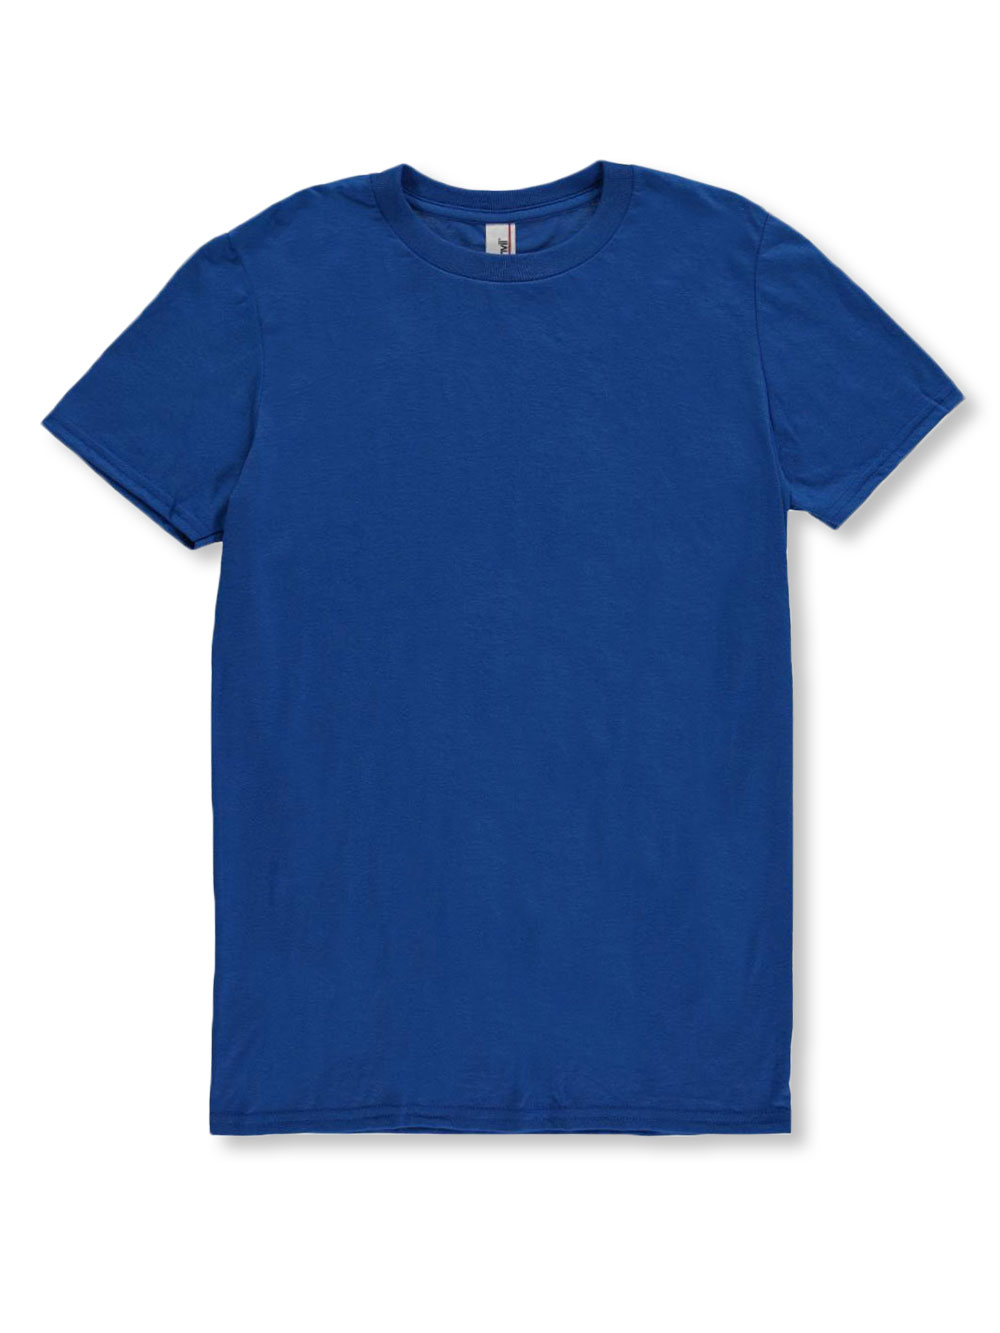 3XL Dickies Anvil Work Workwear Polo T-Shirt in BLUE Size S